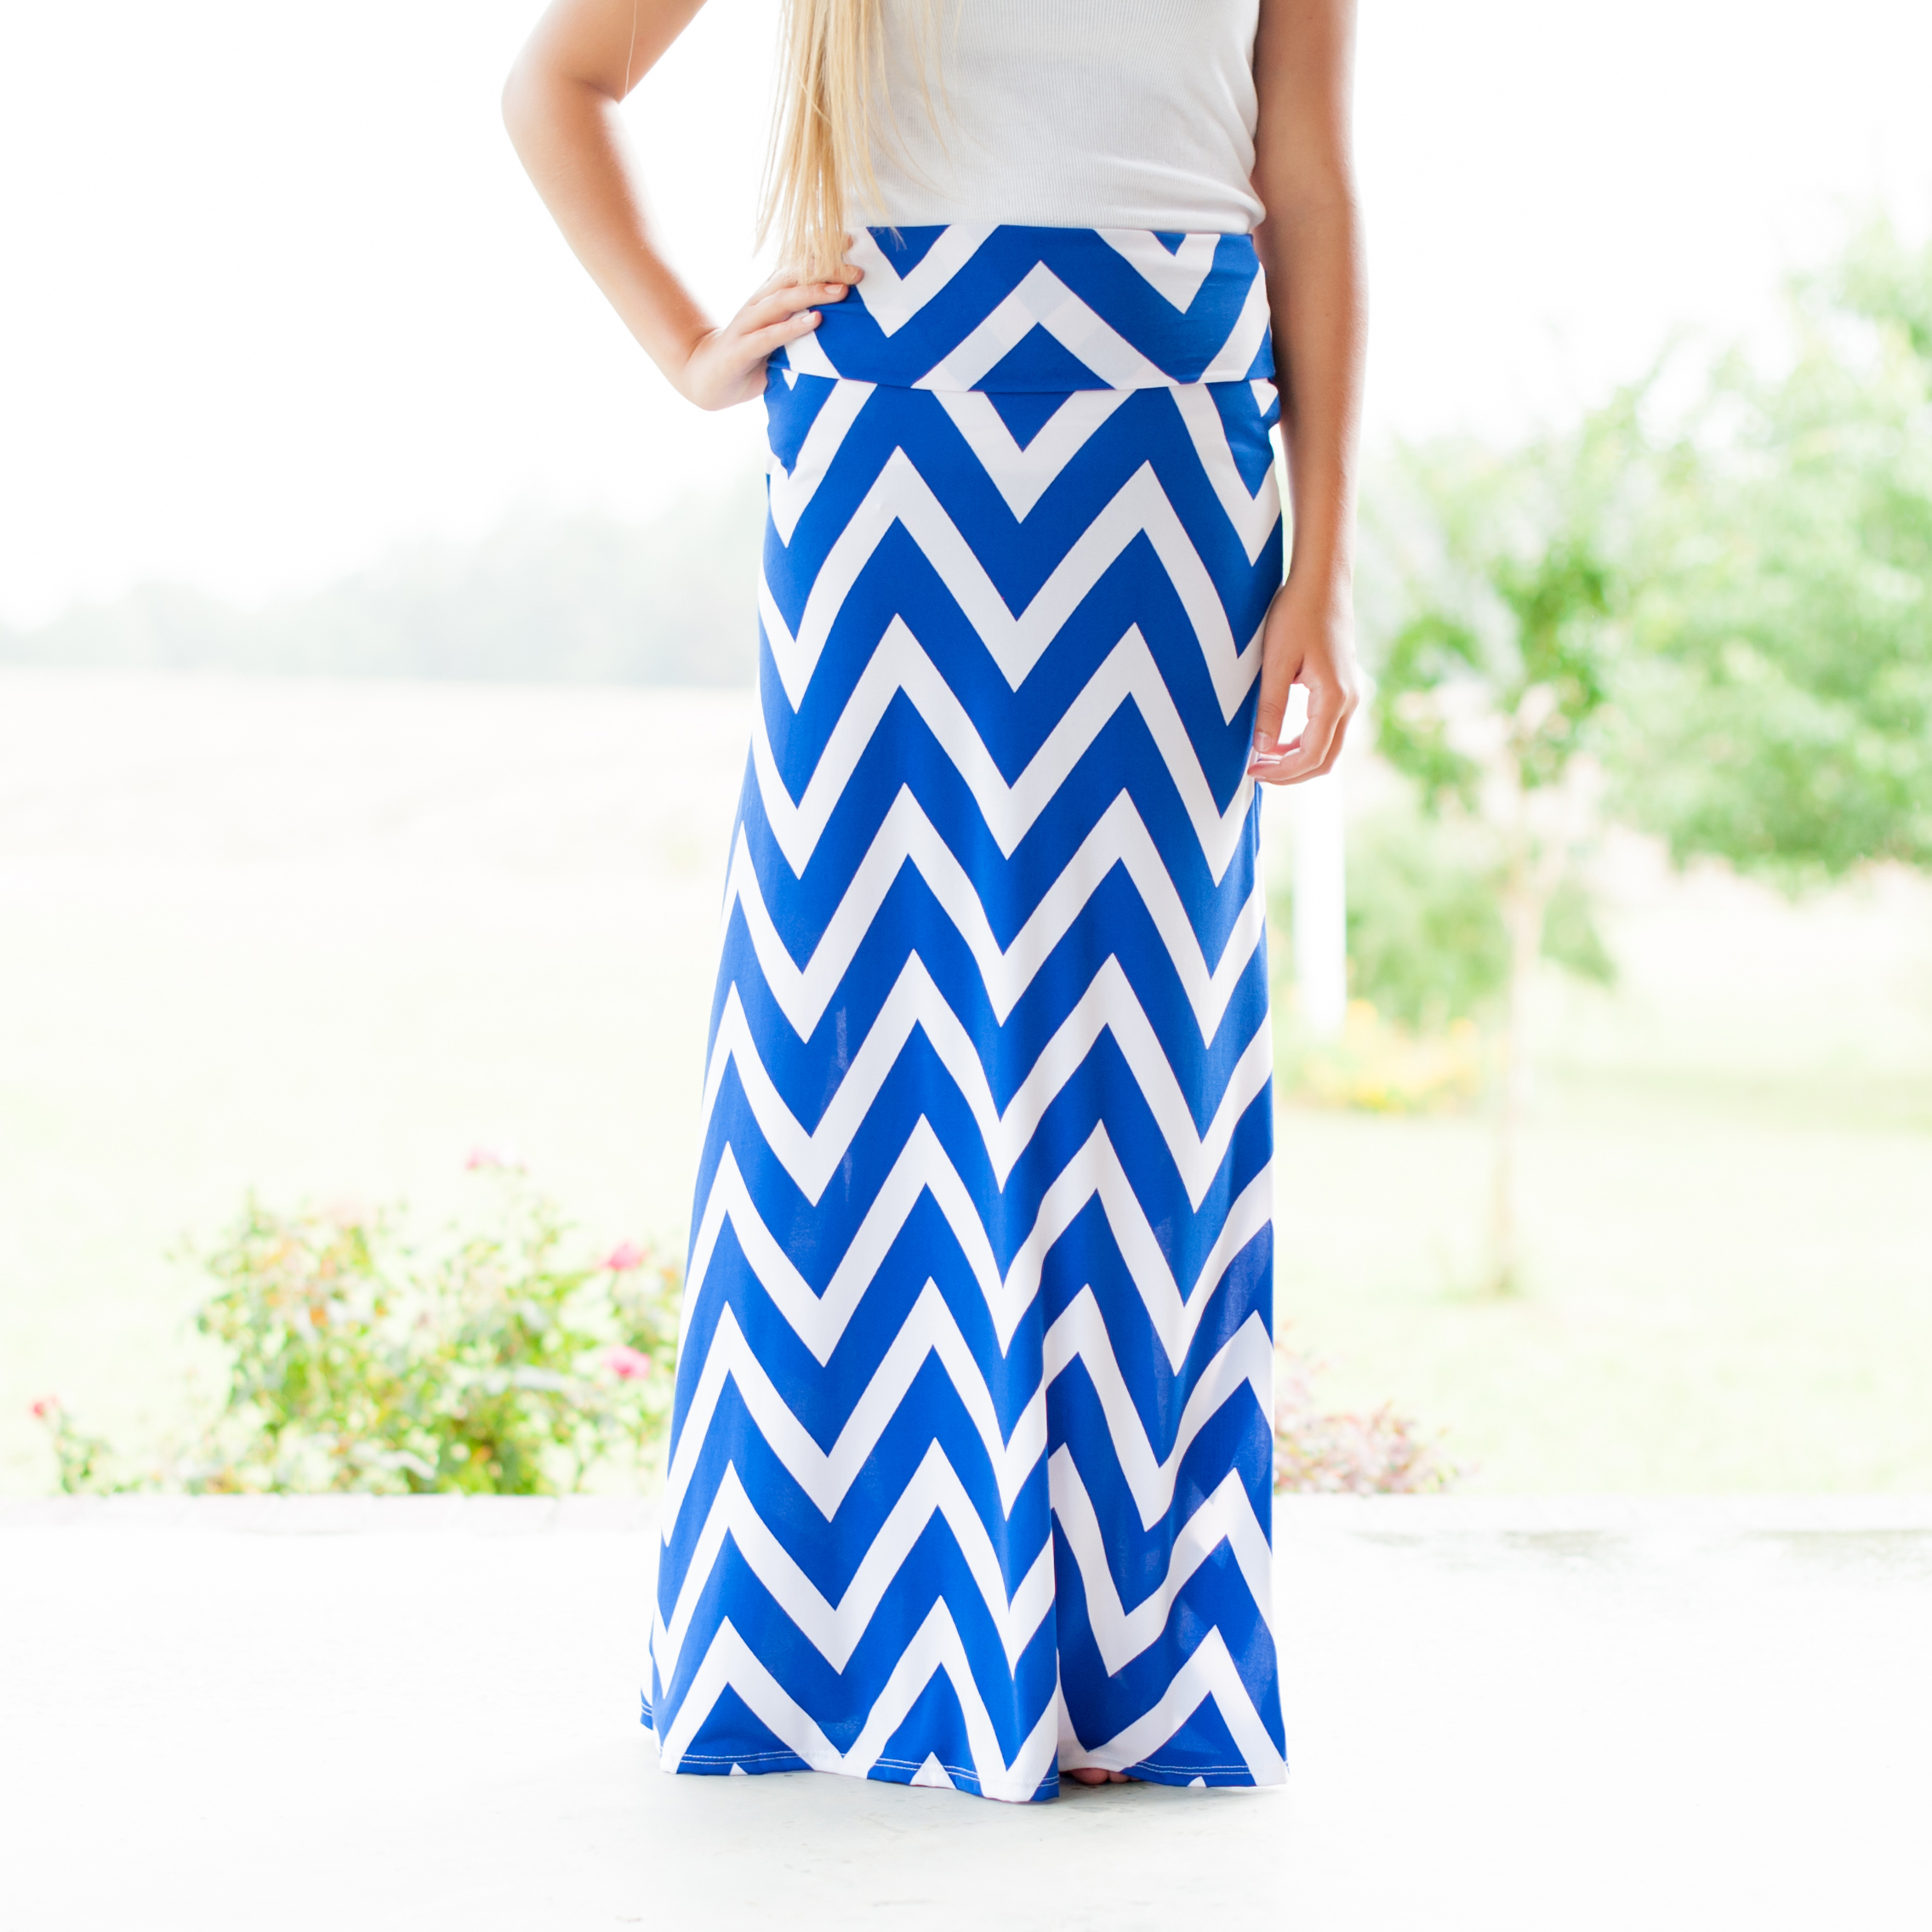 Chevron Maxi Skirt in Royal Blue - Lizzy's on 10th